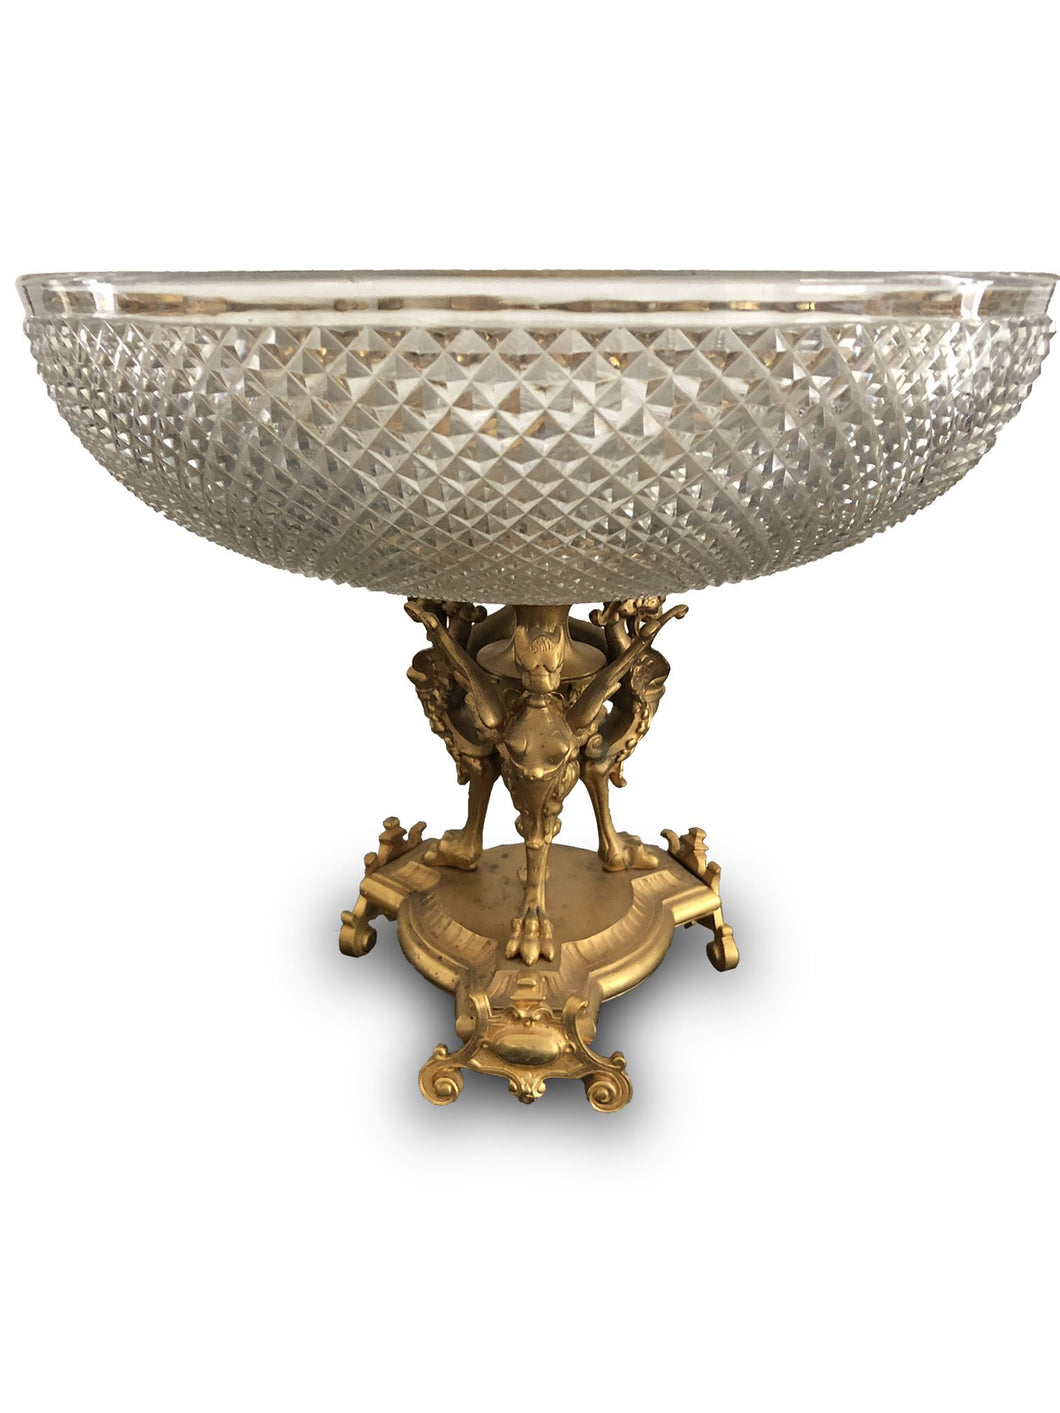 Centre de Table en Cristal d'époque Napoléon III